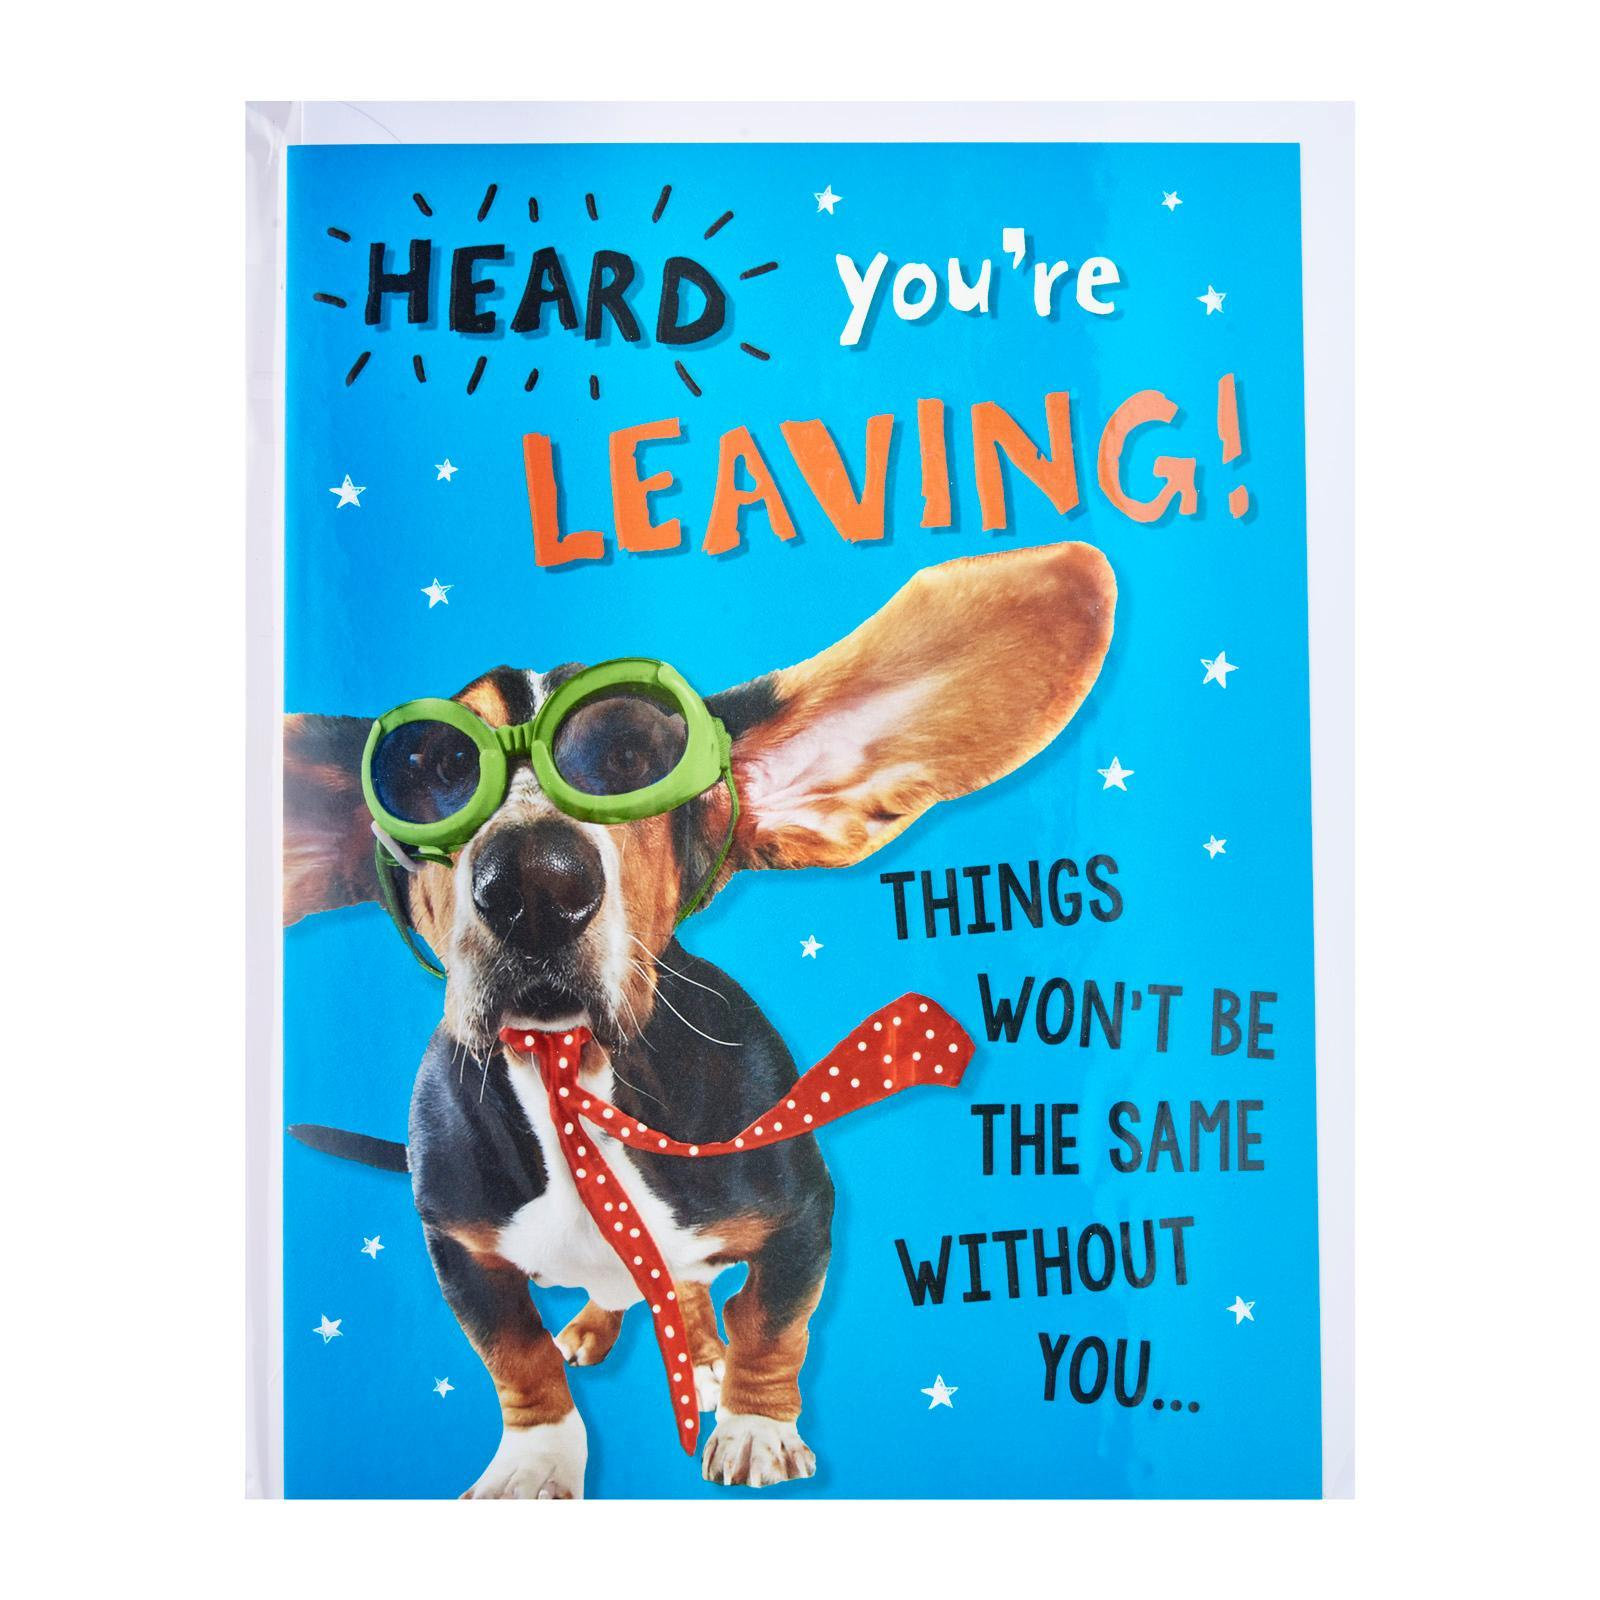 Pink Chilli Designs Farewell Card - Heard You're Leaving! Things Won't Be The Same Without You...